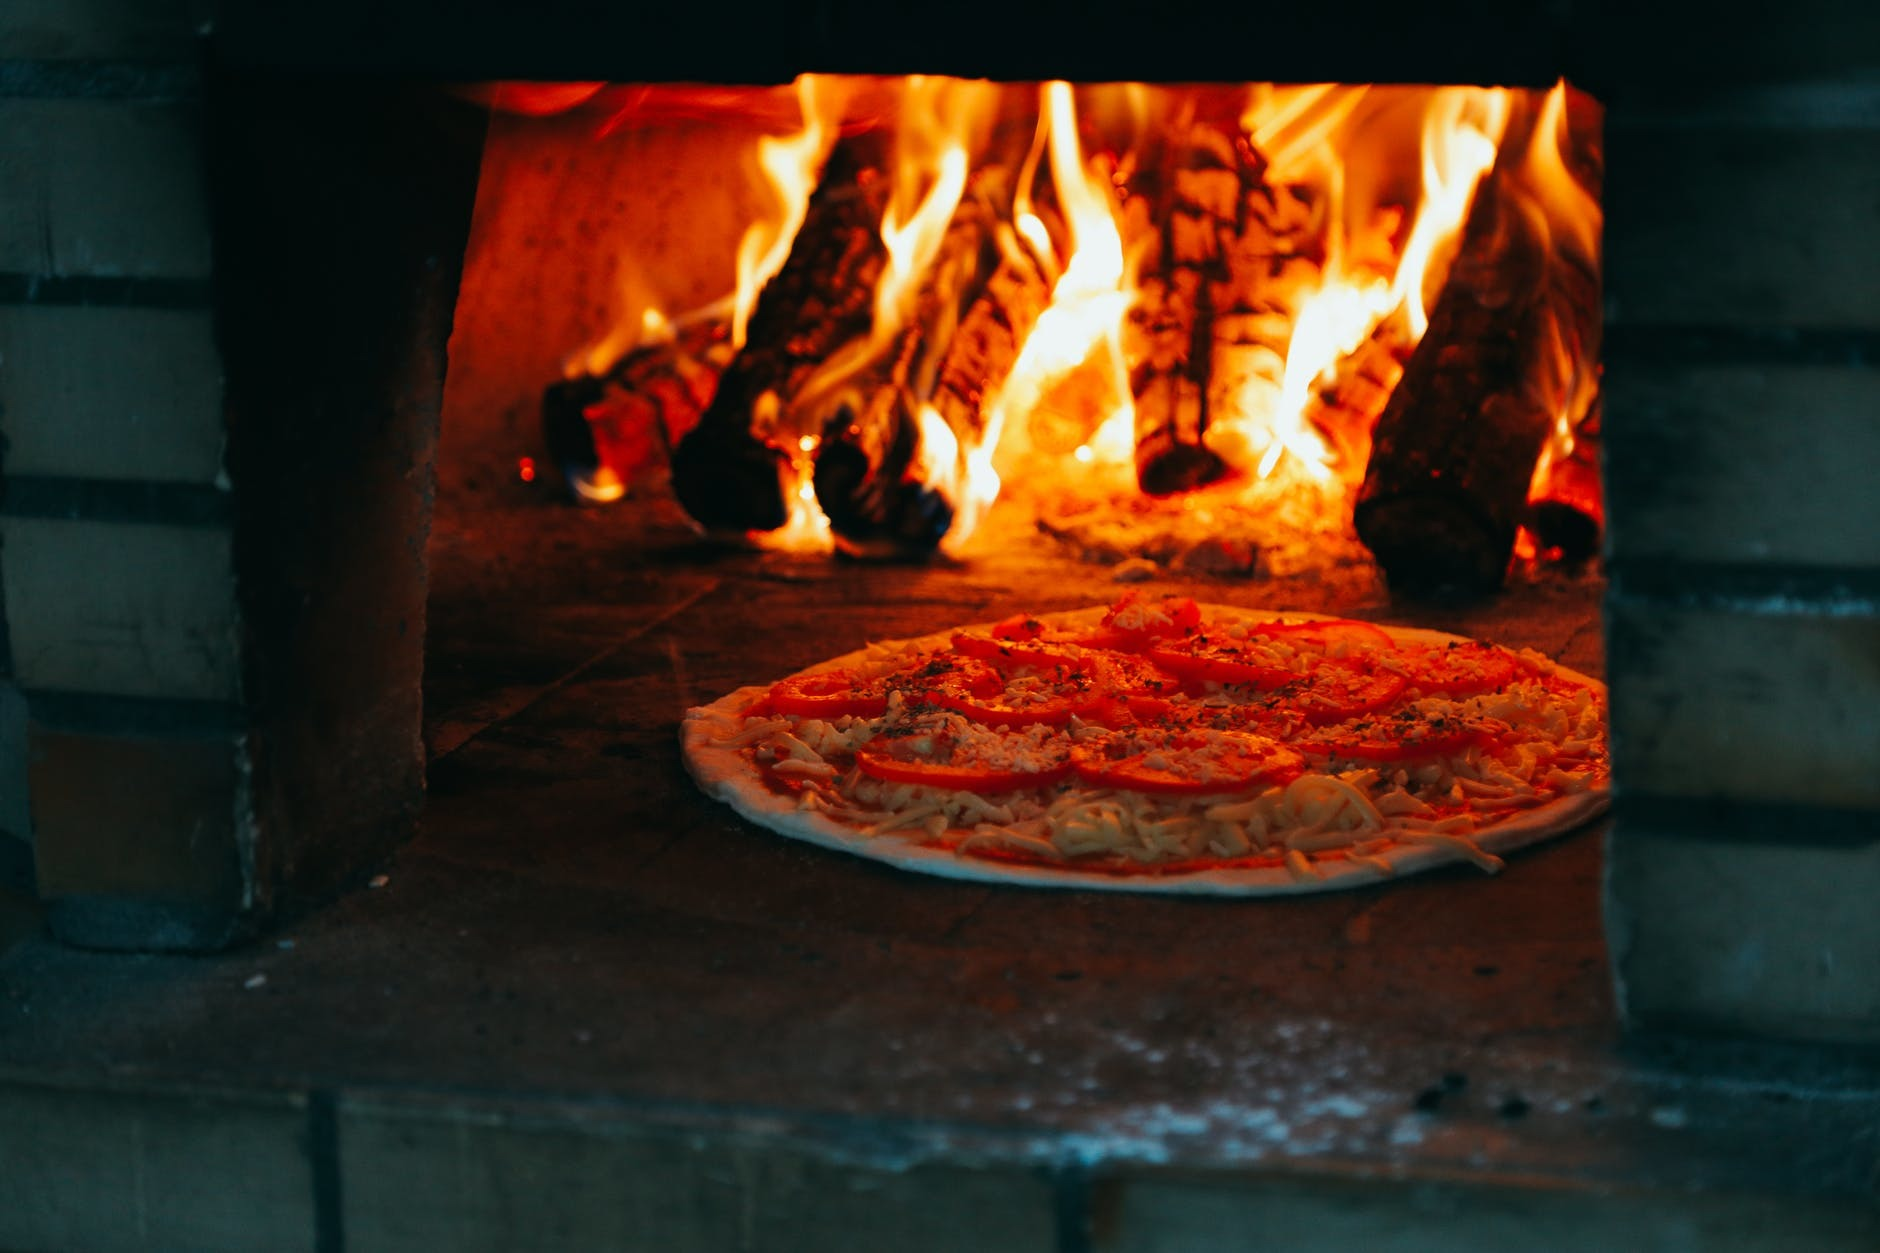 Cooked pizza in a ceramic oven